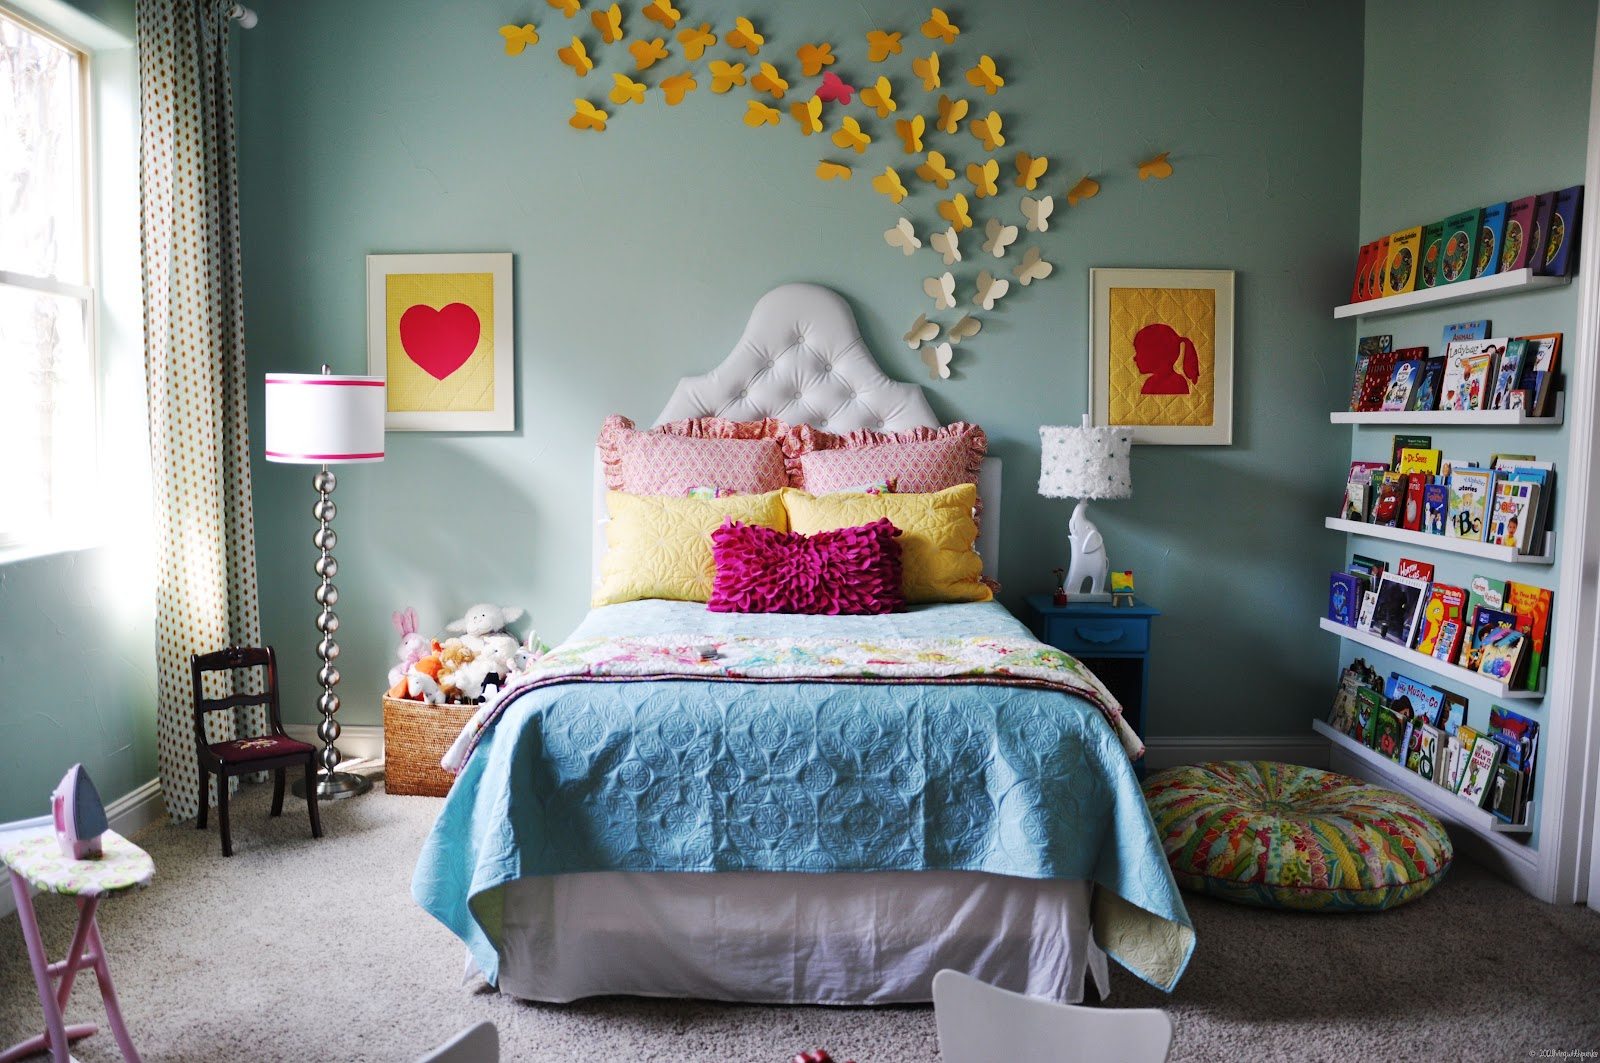 Big girl bedroom ideas for Girls bedroom decor ideas